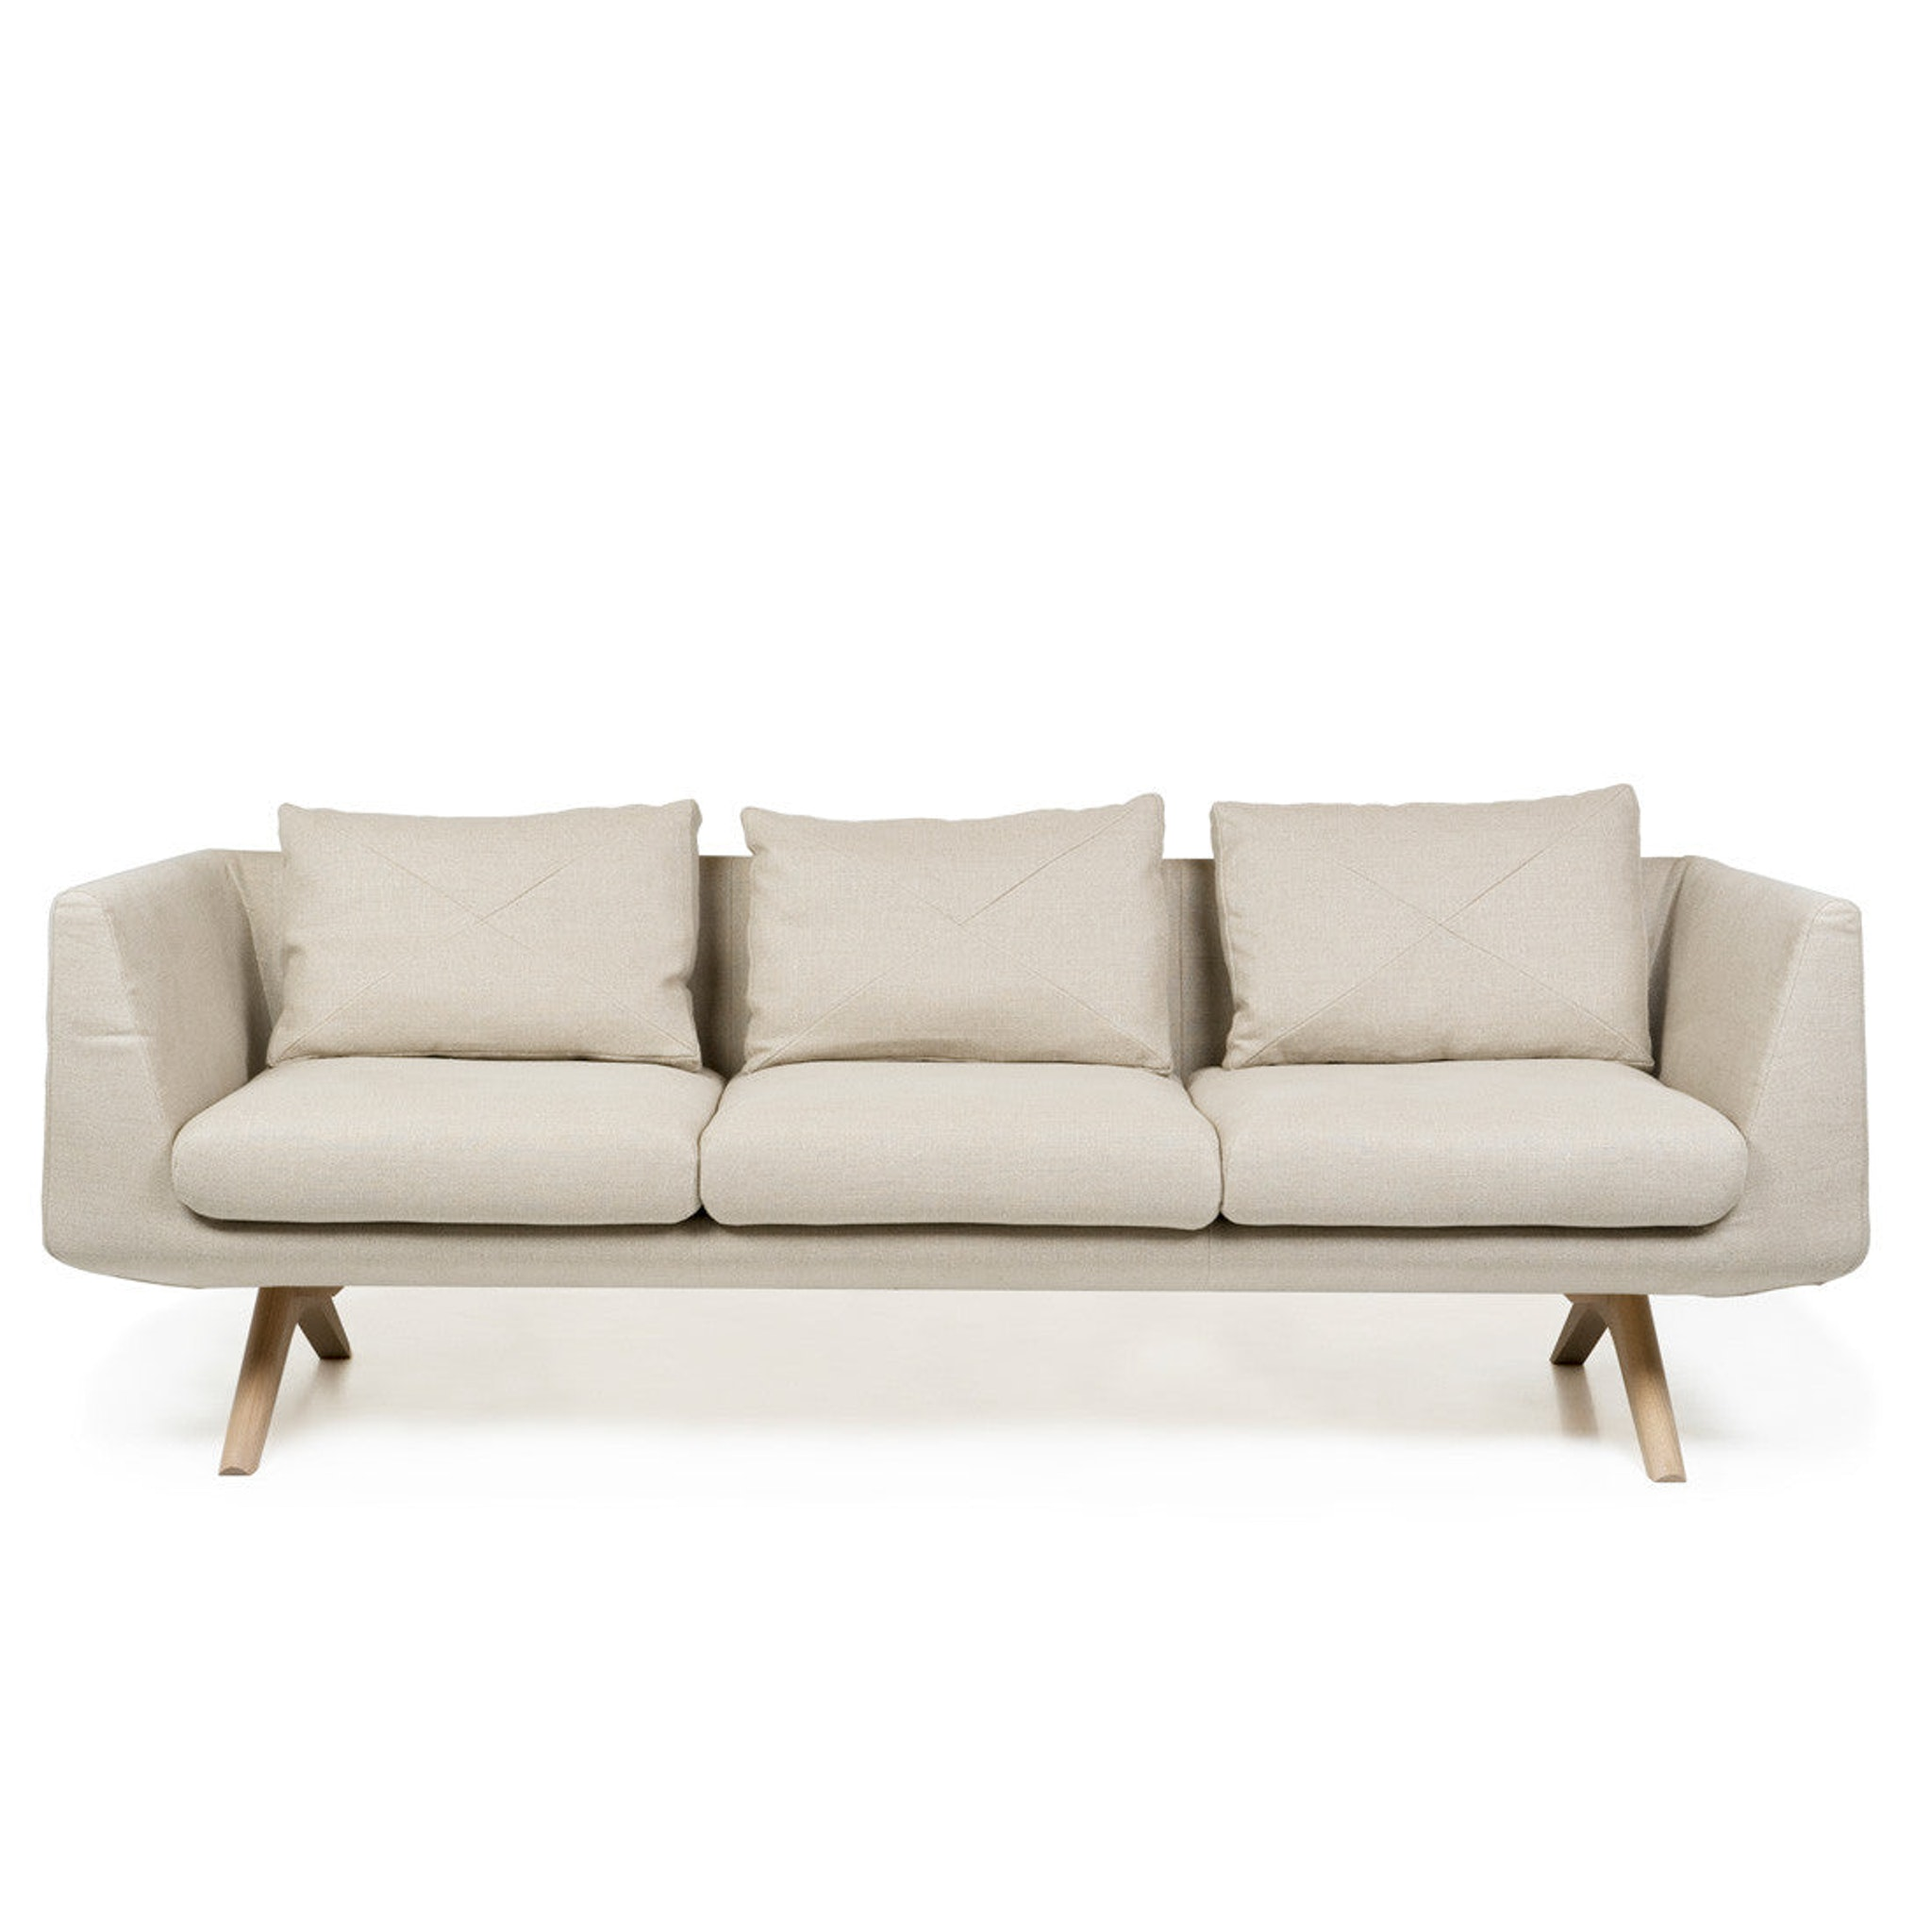 Hepburn Fixed Three Seater Sofa by Matthew Hilton